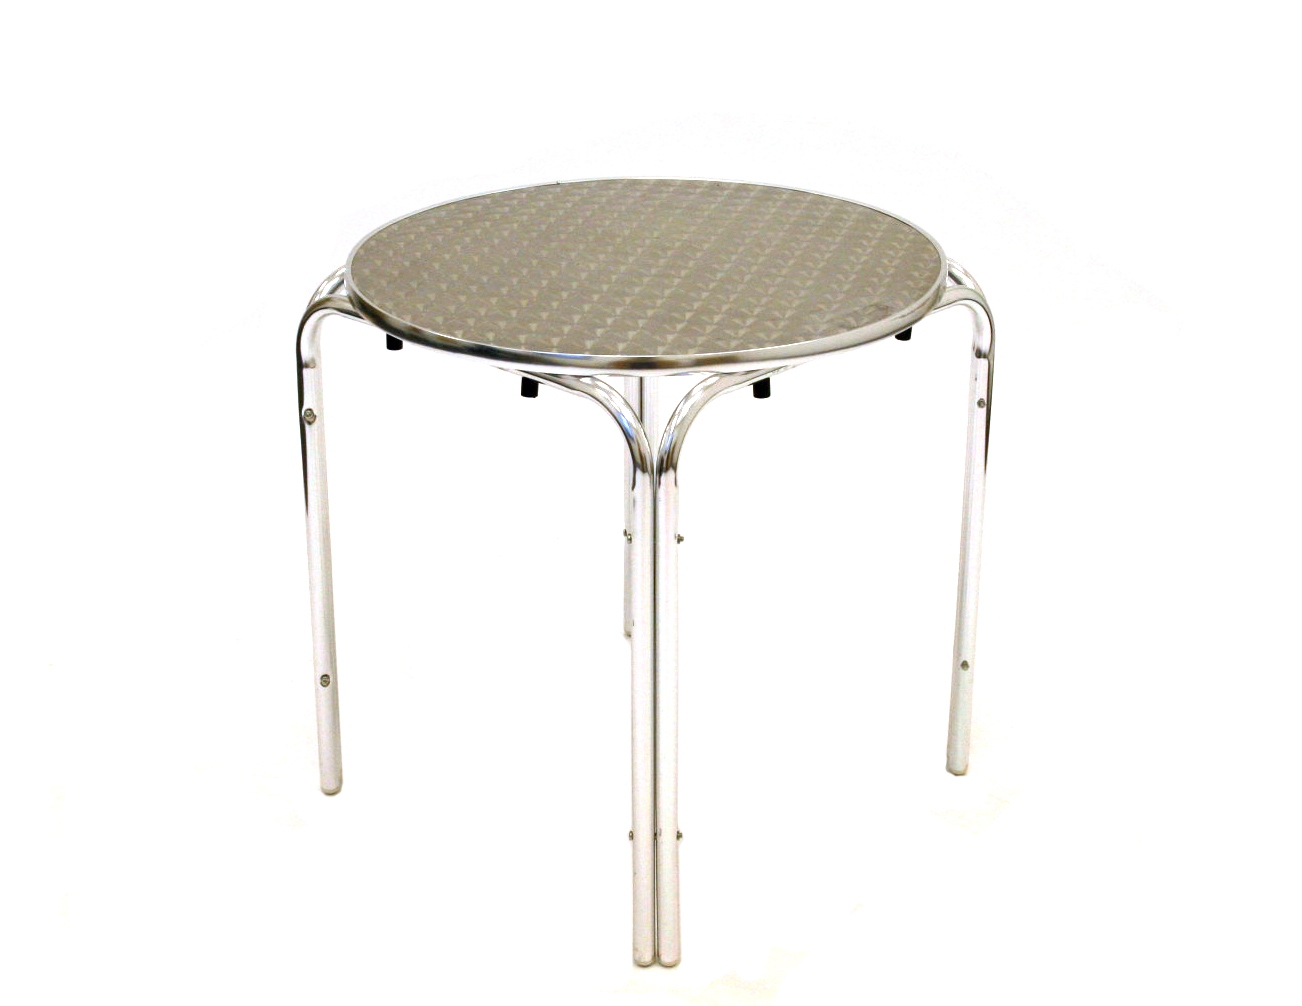 Aluminium bistro style table- BE Event Hire